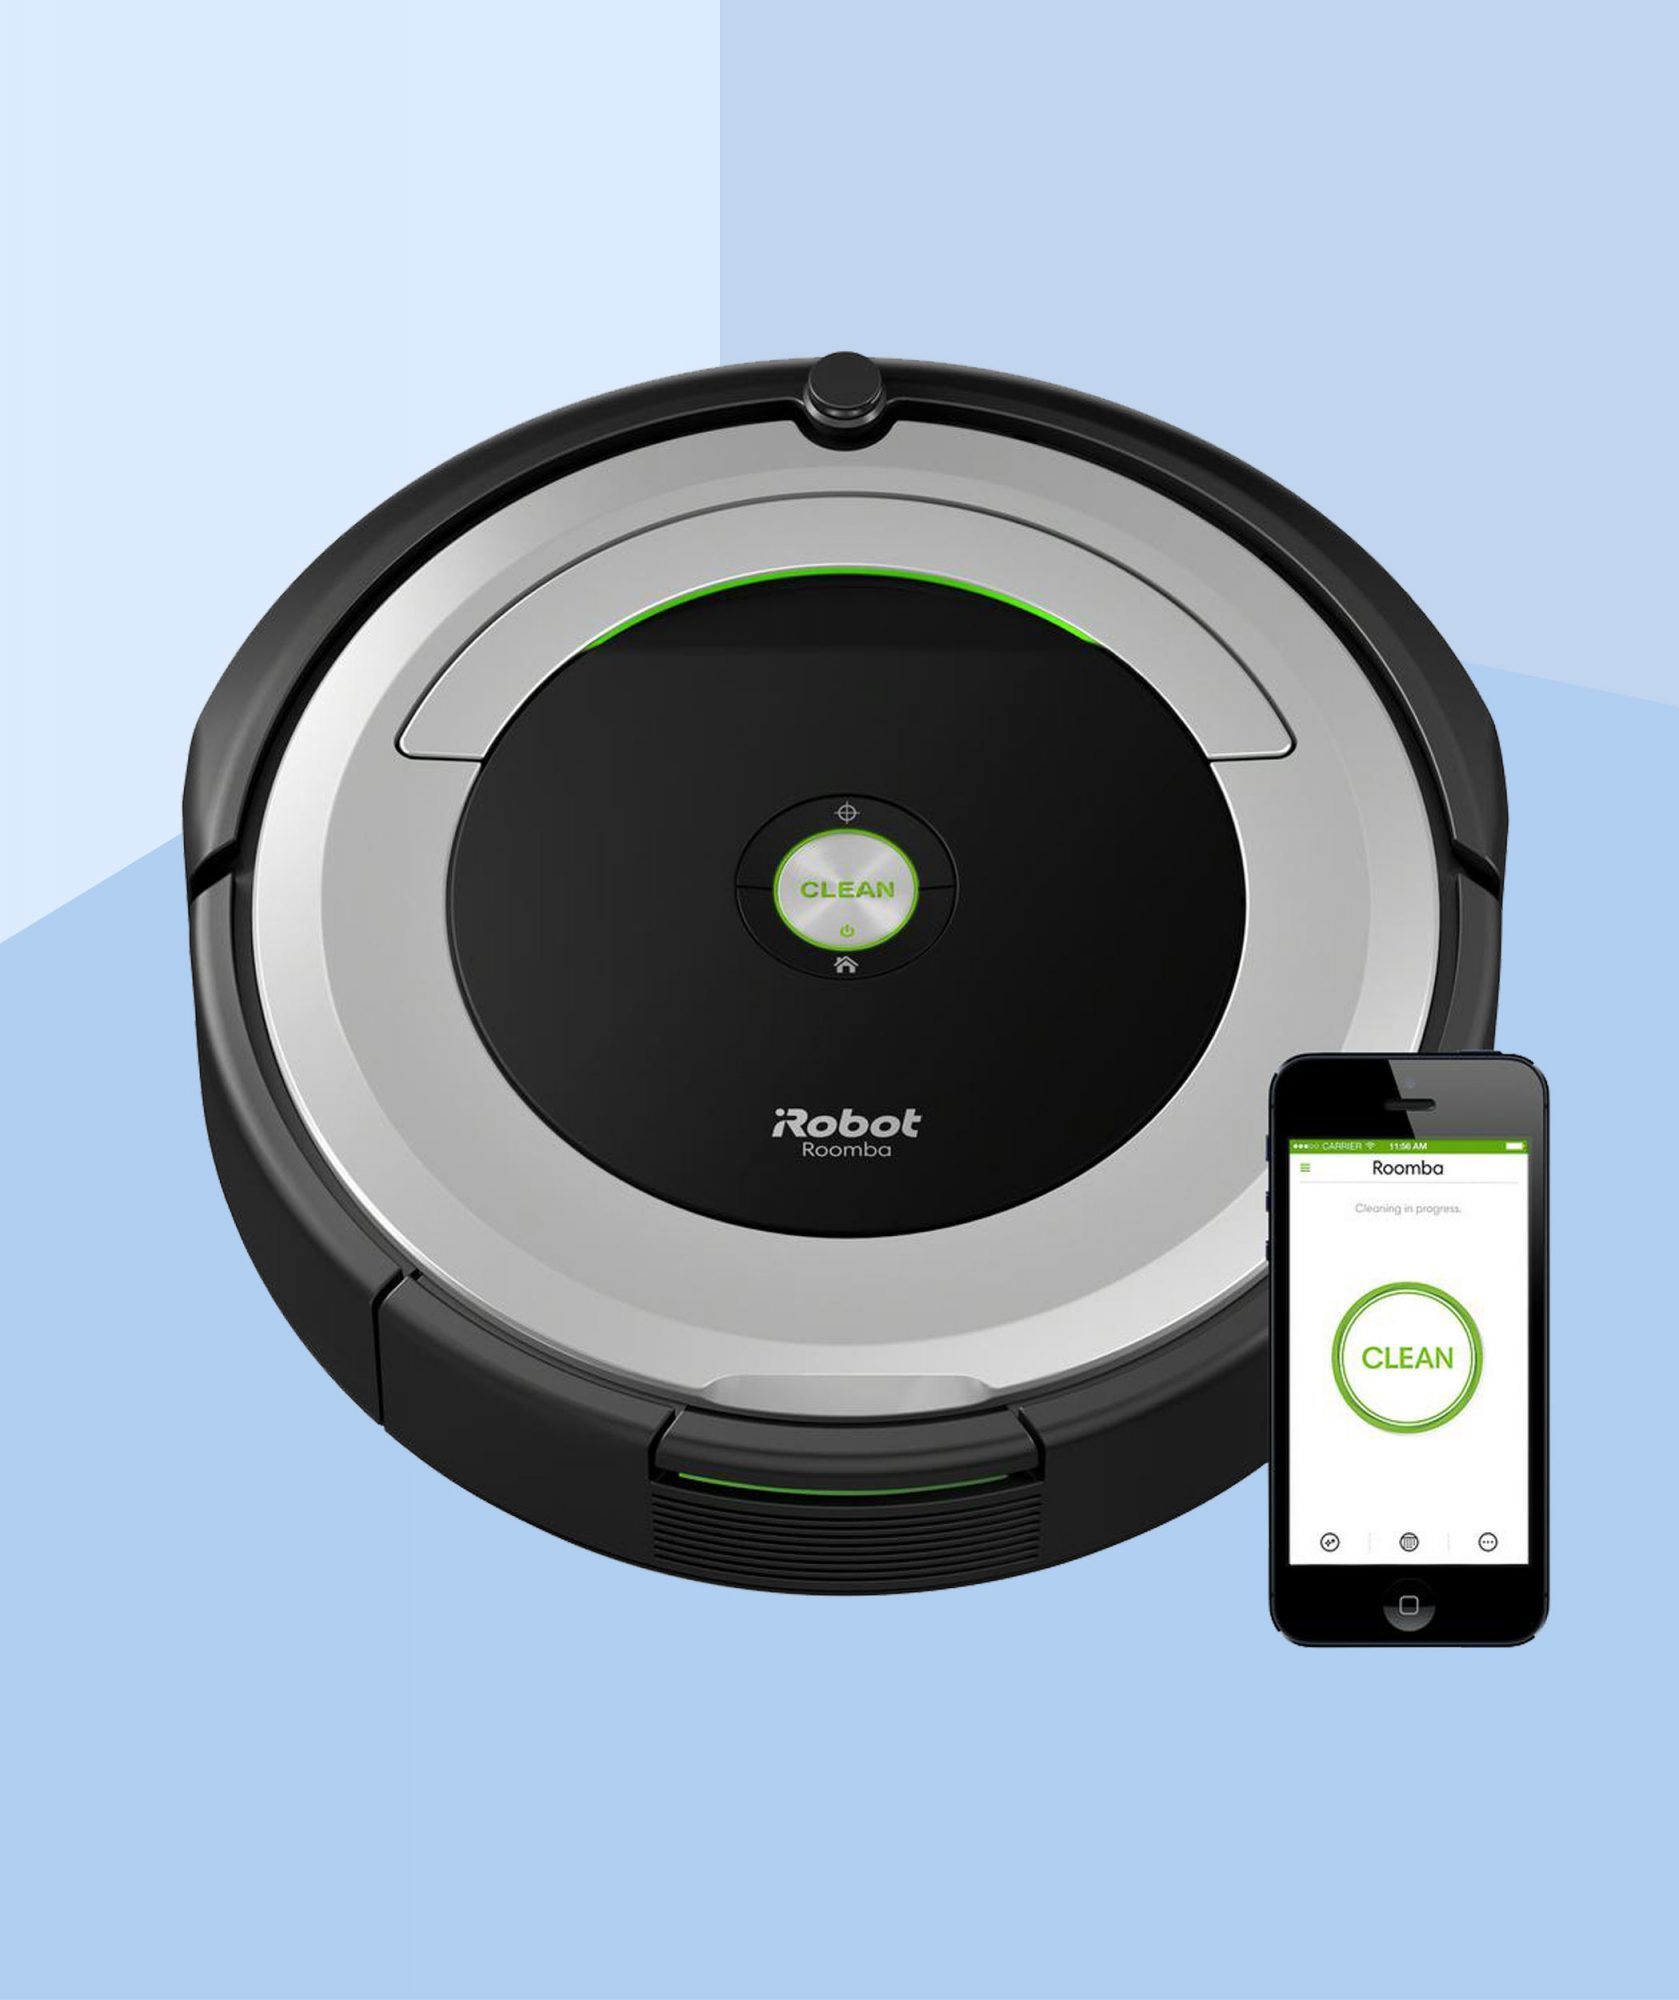 Amazon's Most Popular Roomba Robot Vacuums Are Already on Sale Ahead of Prime Day